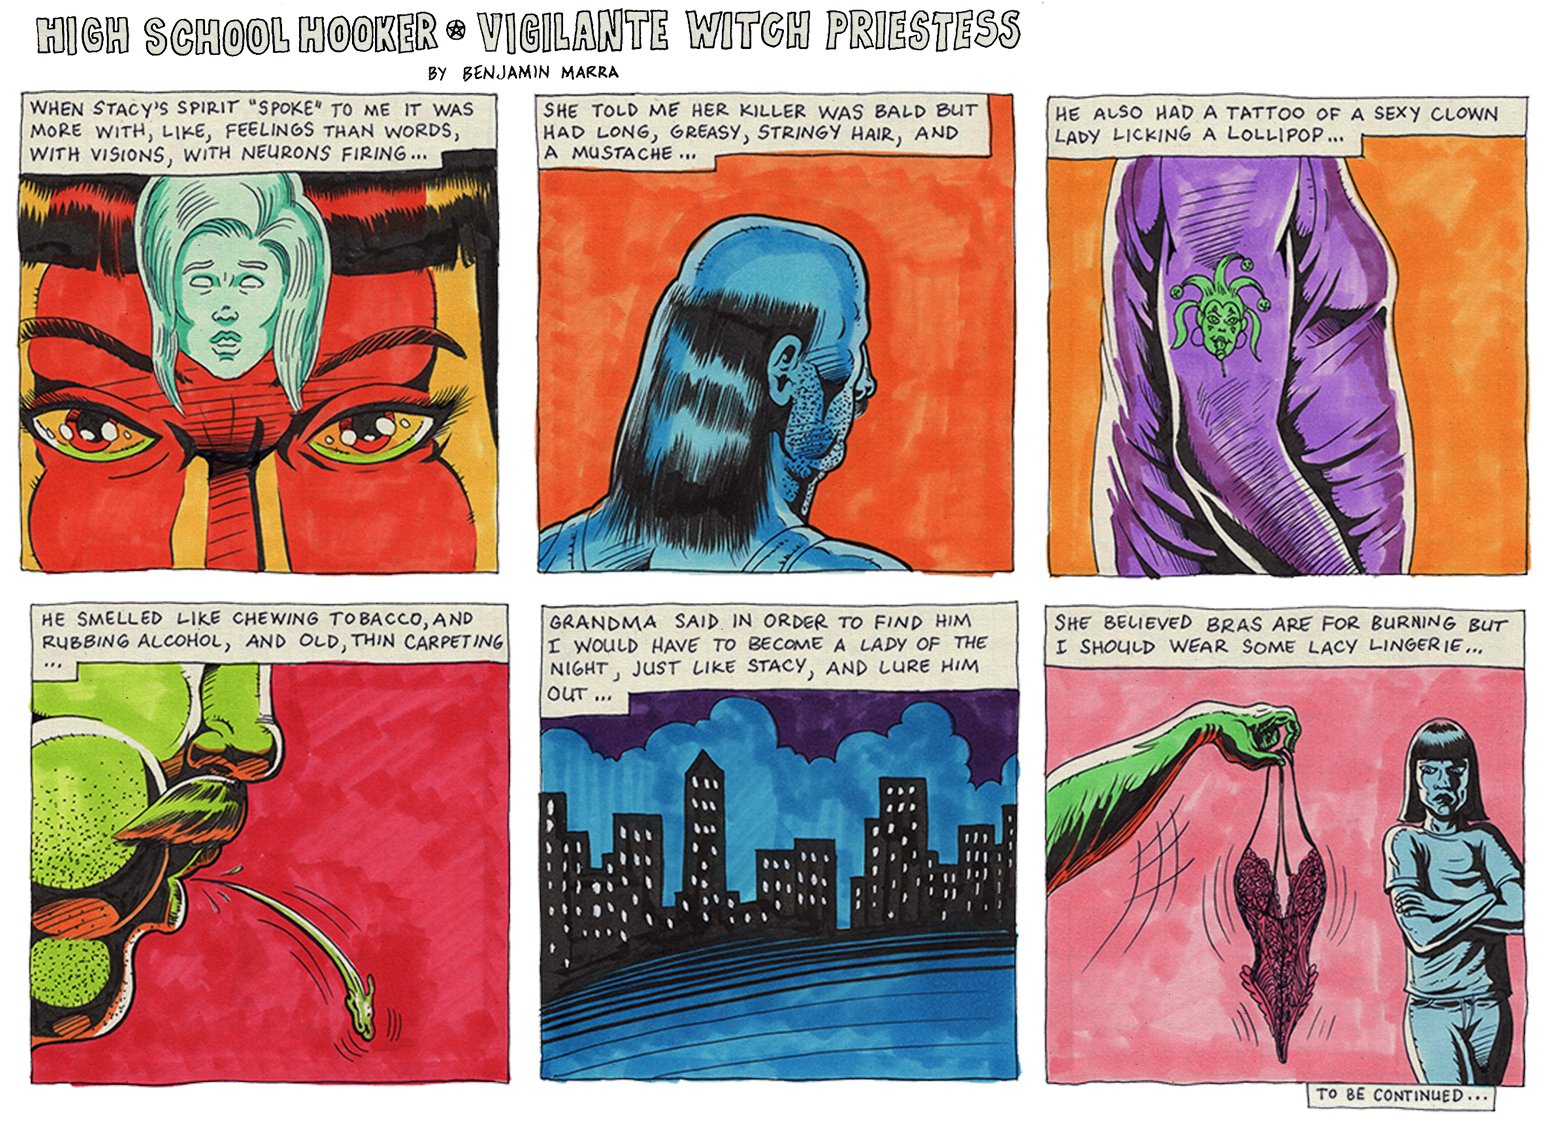 High School Hooker * Vigilante Witch Priestess by benjamin-marra